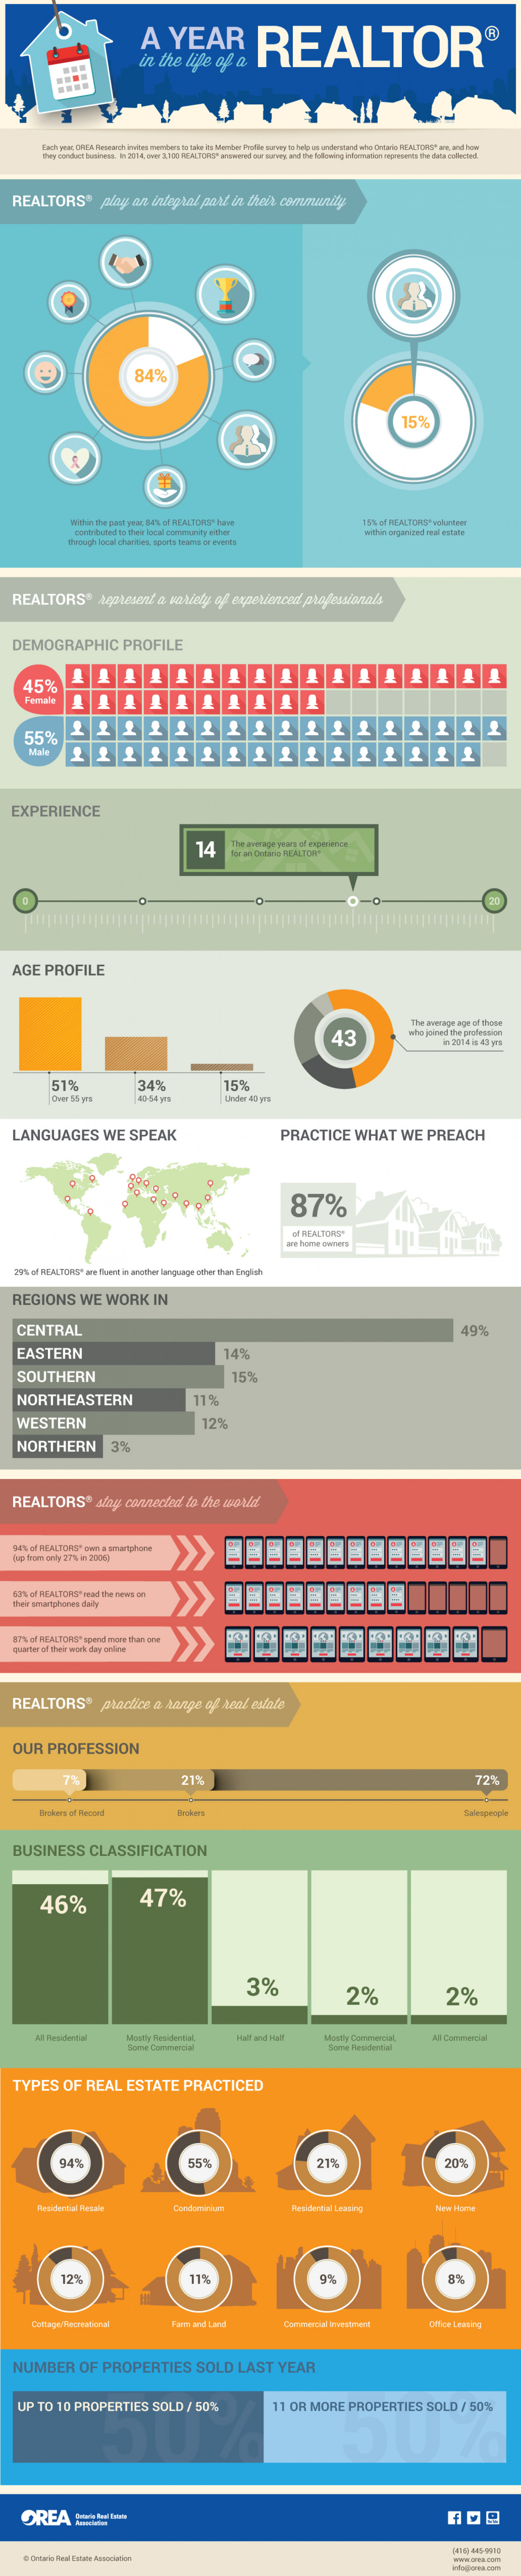 A YEAR IN THE LIFE OF A REALTOR Infographic